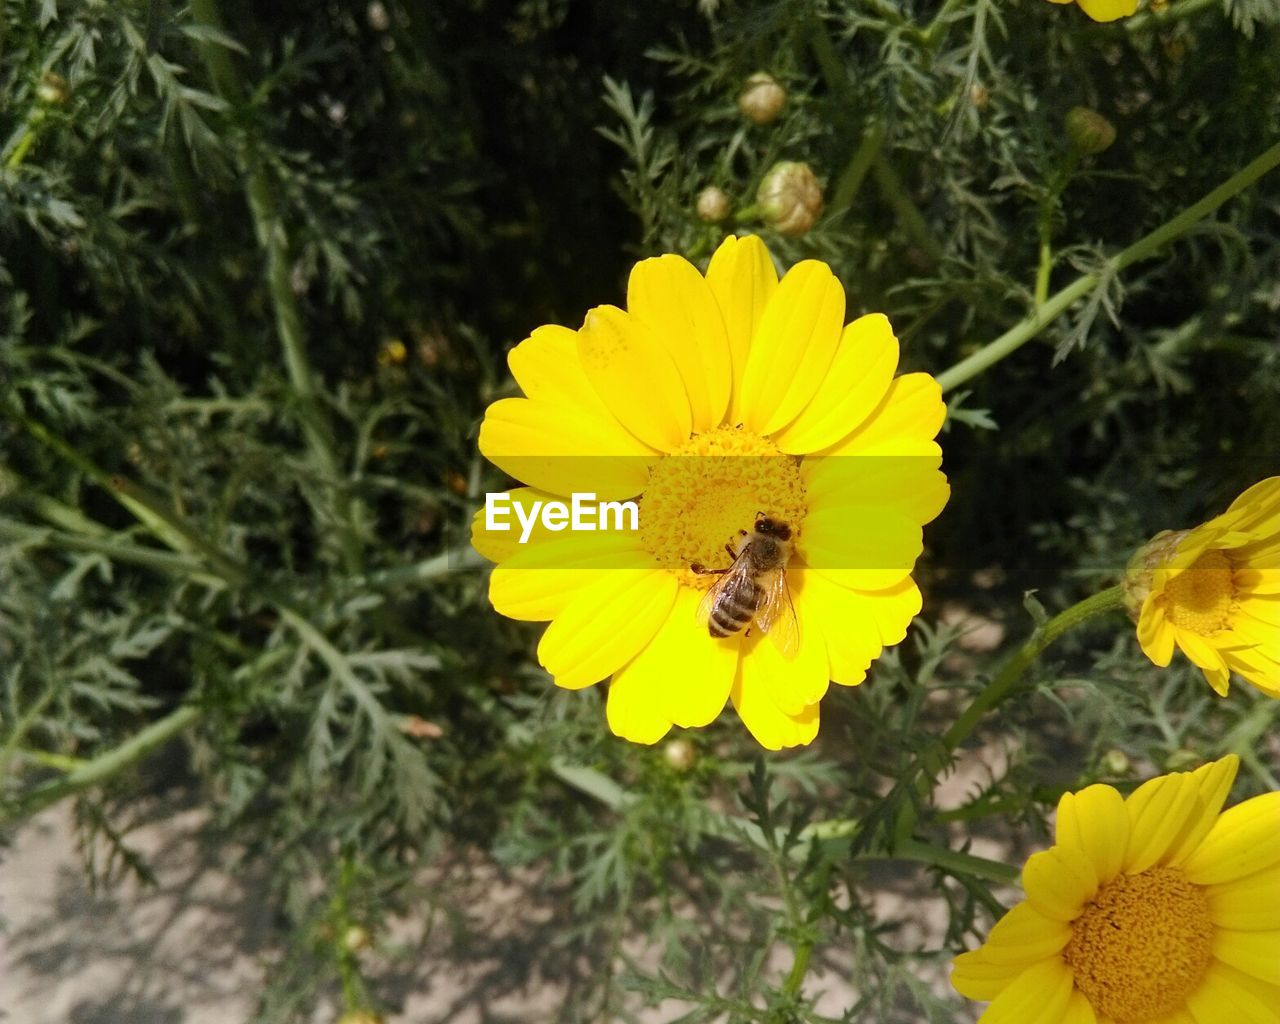 flower, yellow, petal, fragility, nature, beauty in nature, flower head, animal themes, freshness, insect, one animal, animals in the wild, growth, bee, plant, outdoors, pollen, no people, animal wildlife, pollination, symbiotic relationship, day, honey bee, blooming, high angle view, close-up, sunflower, bumblebee, buzzing